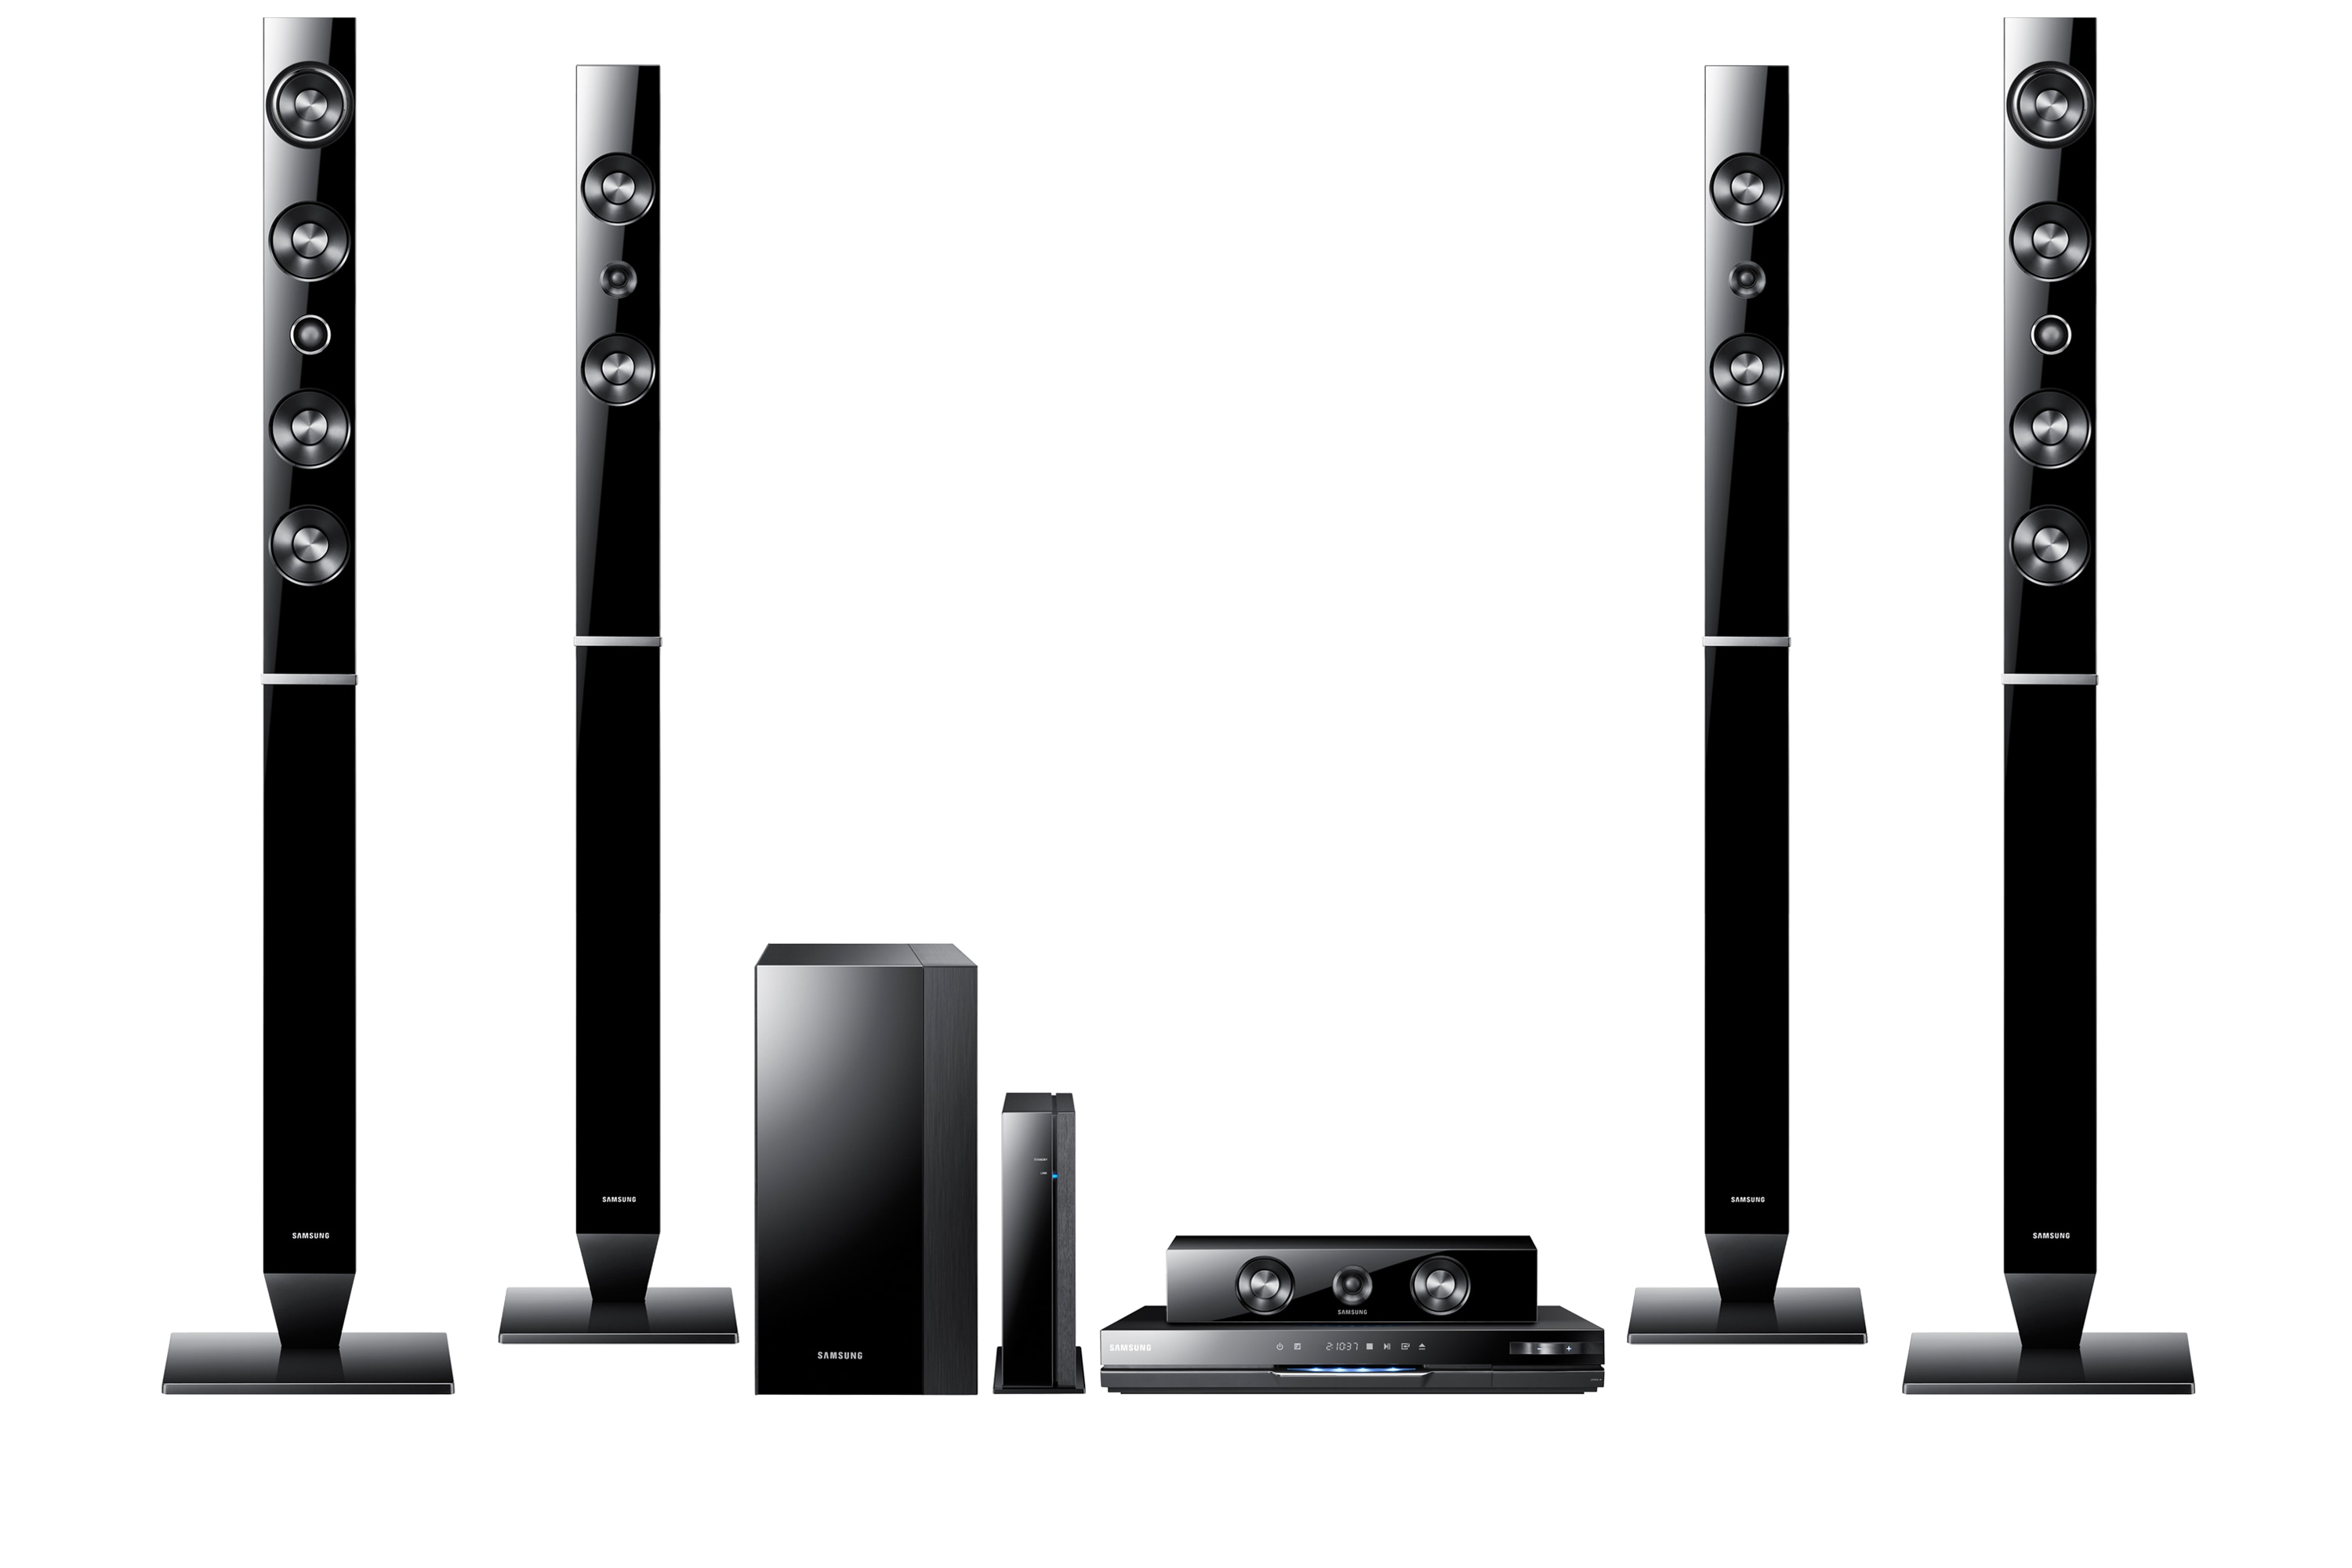 HT-D6750W3D Blu-ray 7.1chHome Entertainment System